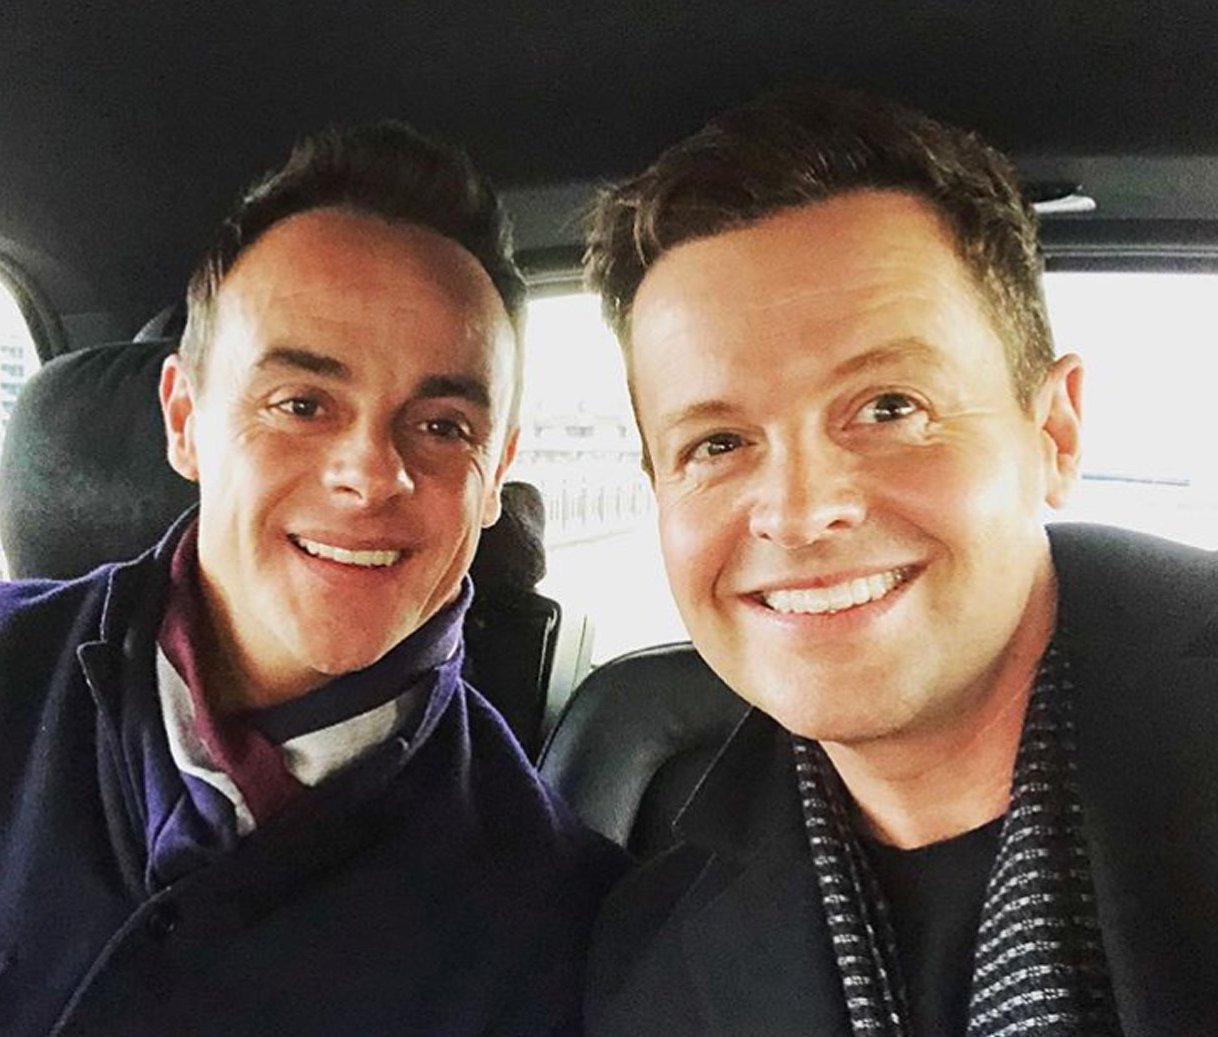 Declan Donnelly's anger over Ant McPartlin's drink-drive arrest revealed as they admit to having 'tensions'